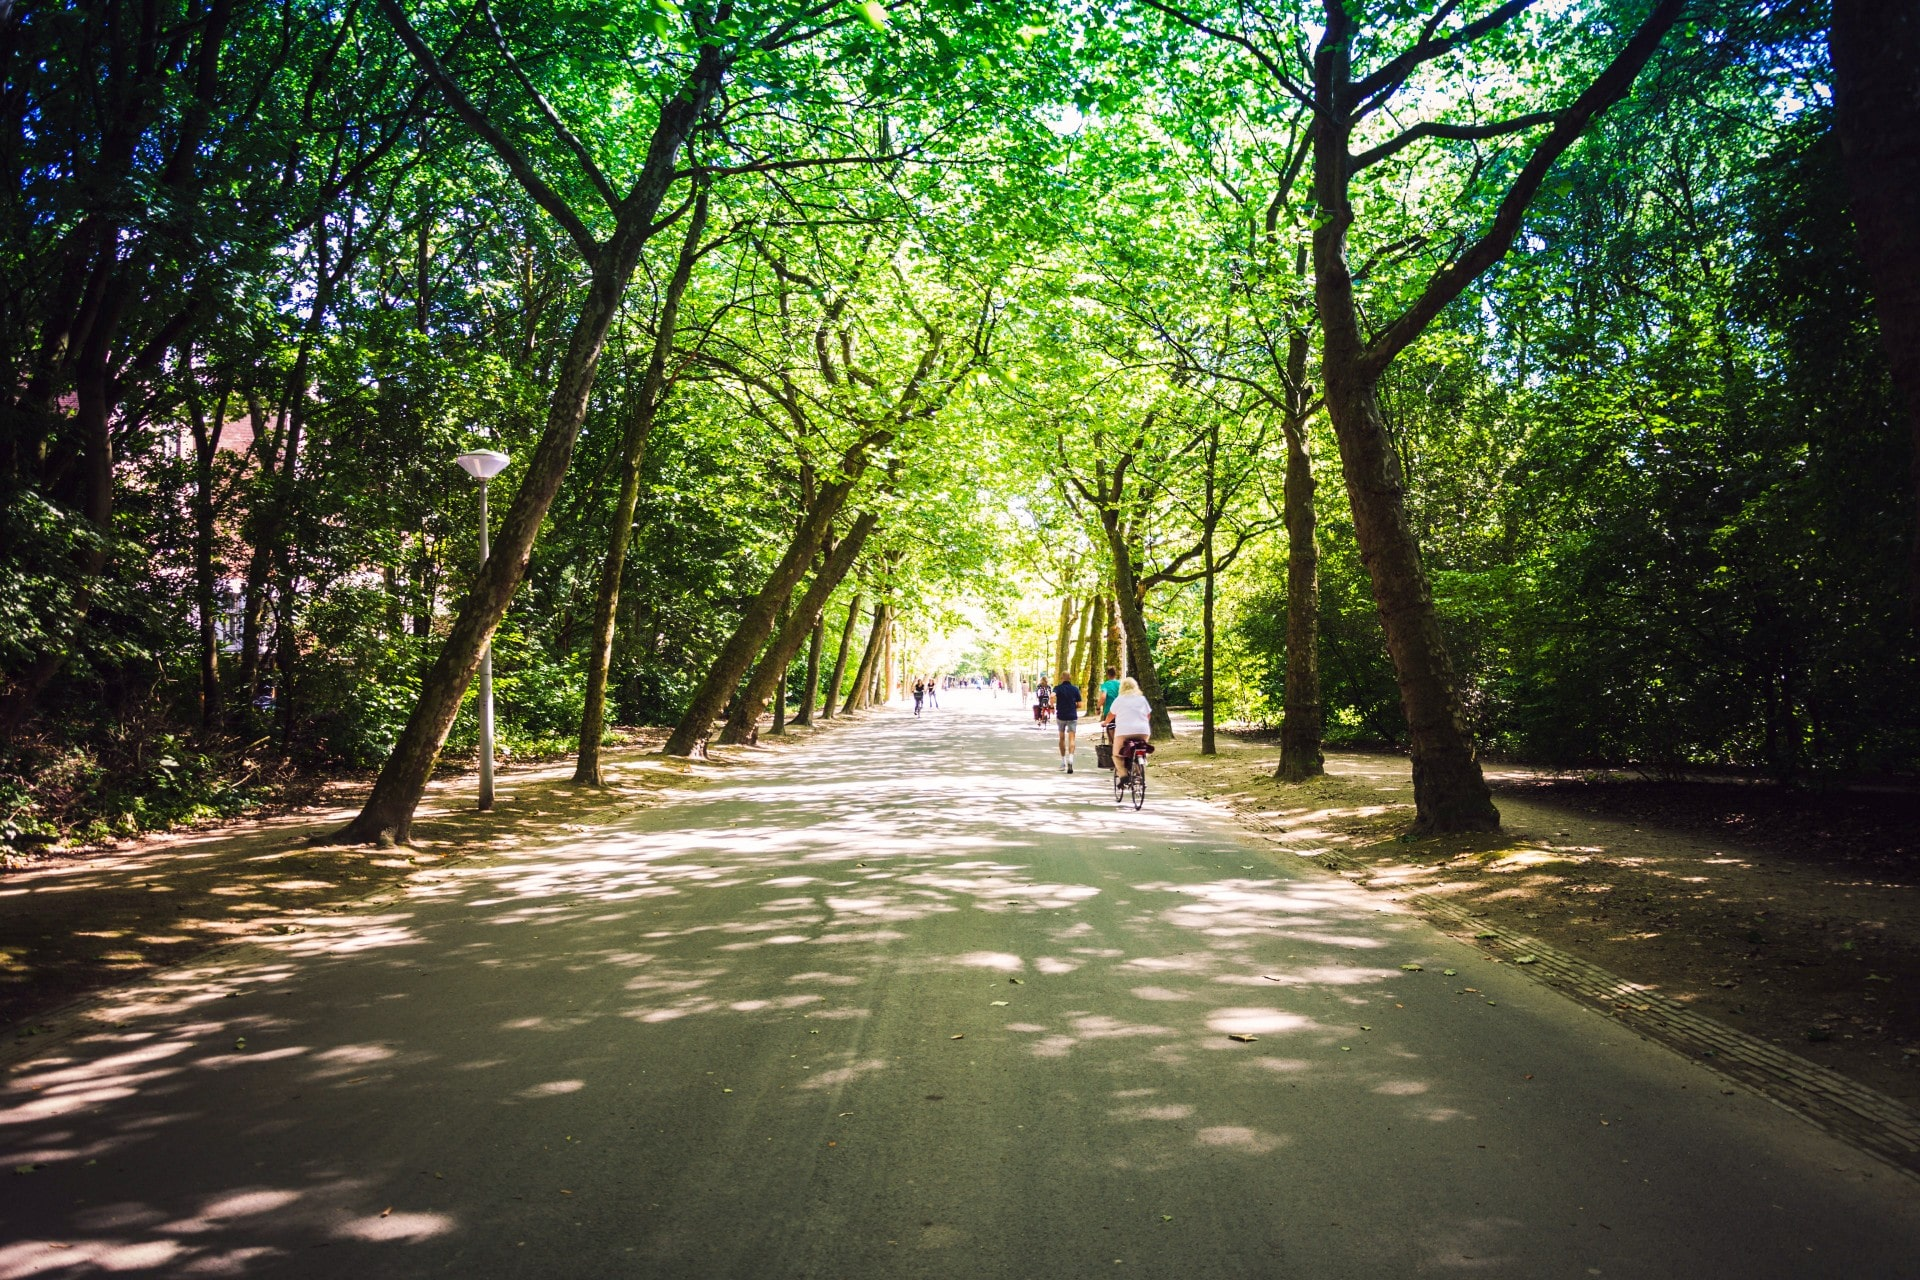 people-running-and-cycling-through-a-green-sun-dabbled-park-in-summer